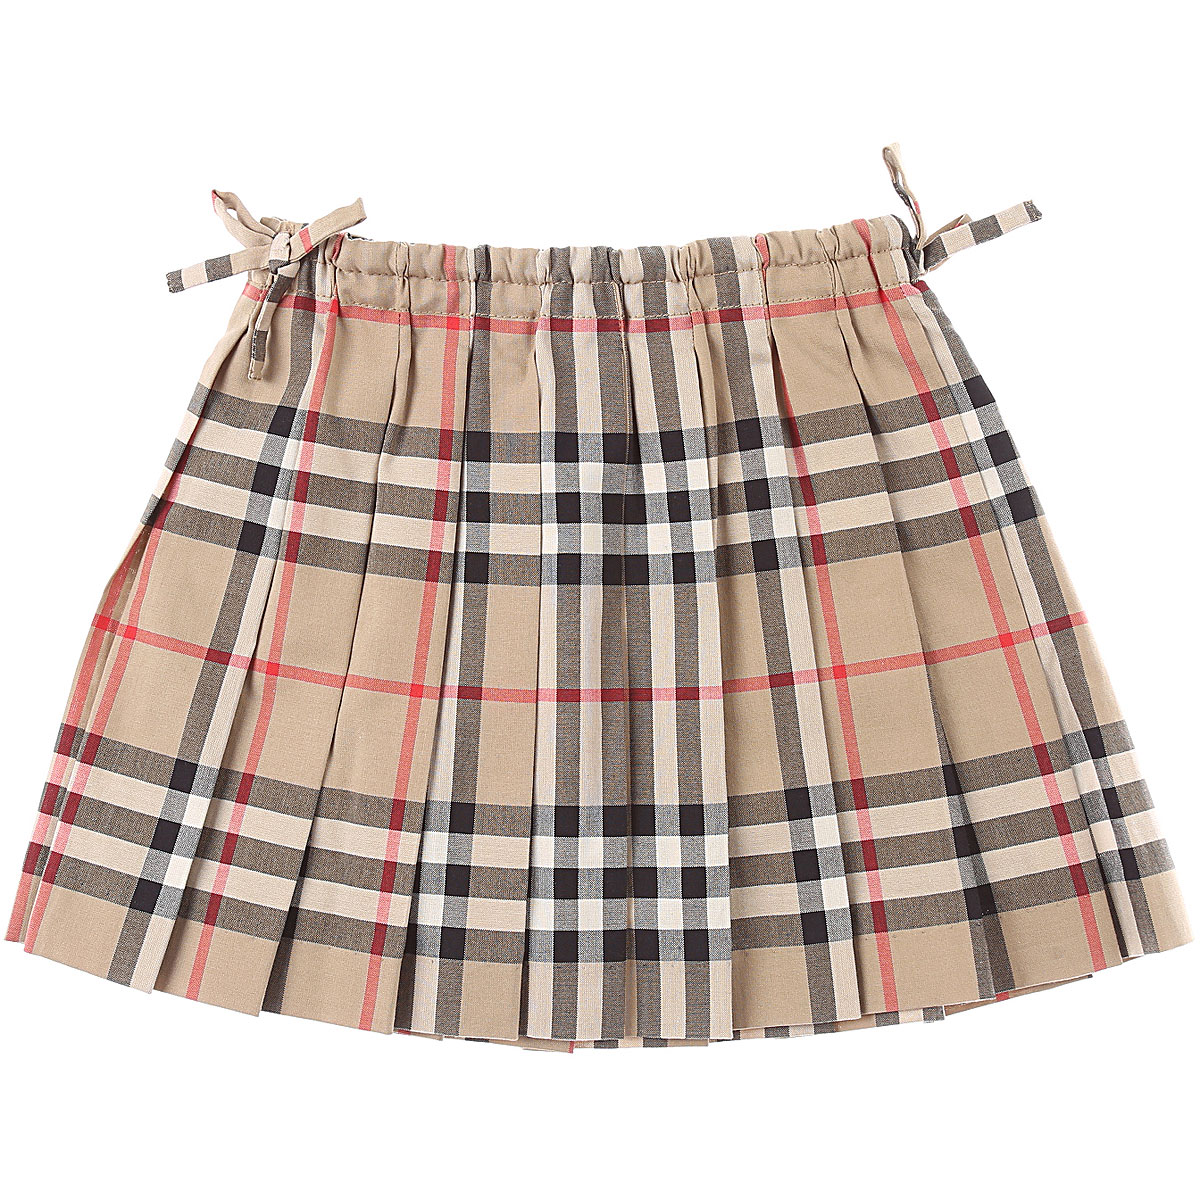 Burberry Baby Skirts for Girls On Sale, Camel, Cotton, 2019, 12M 18M 2Y 2Y 3Y 6M